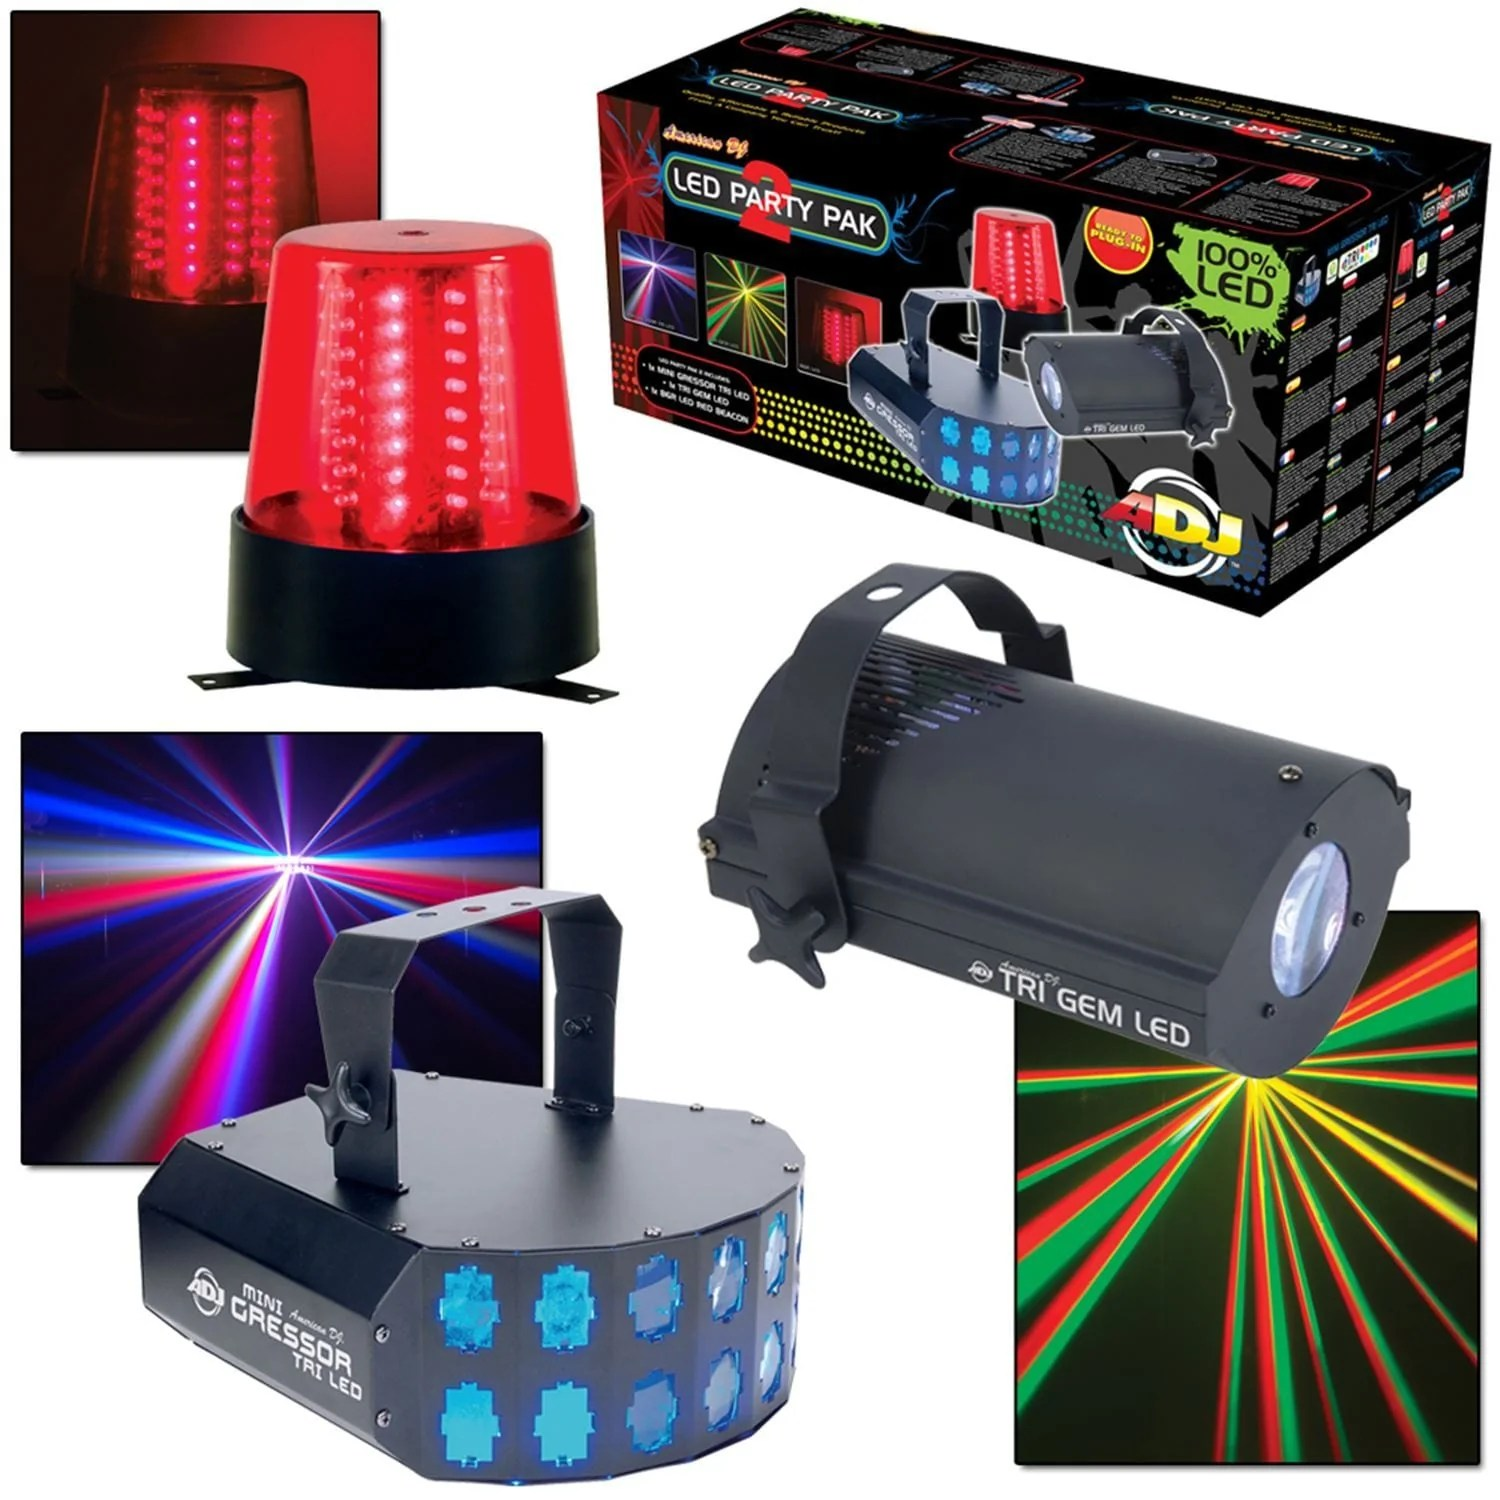 american dj led party pak 2 3 in 1 light effects